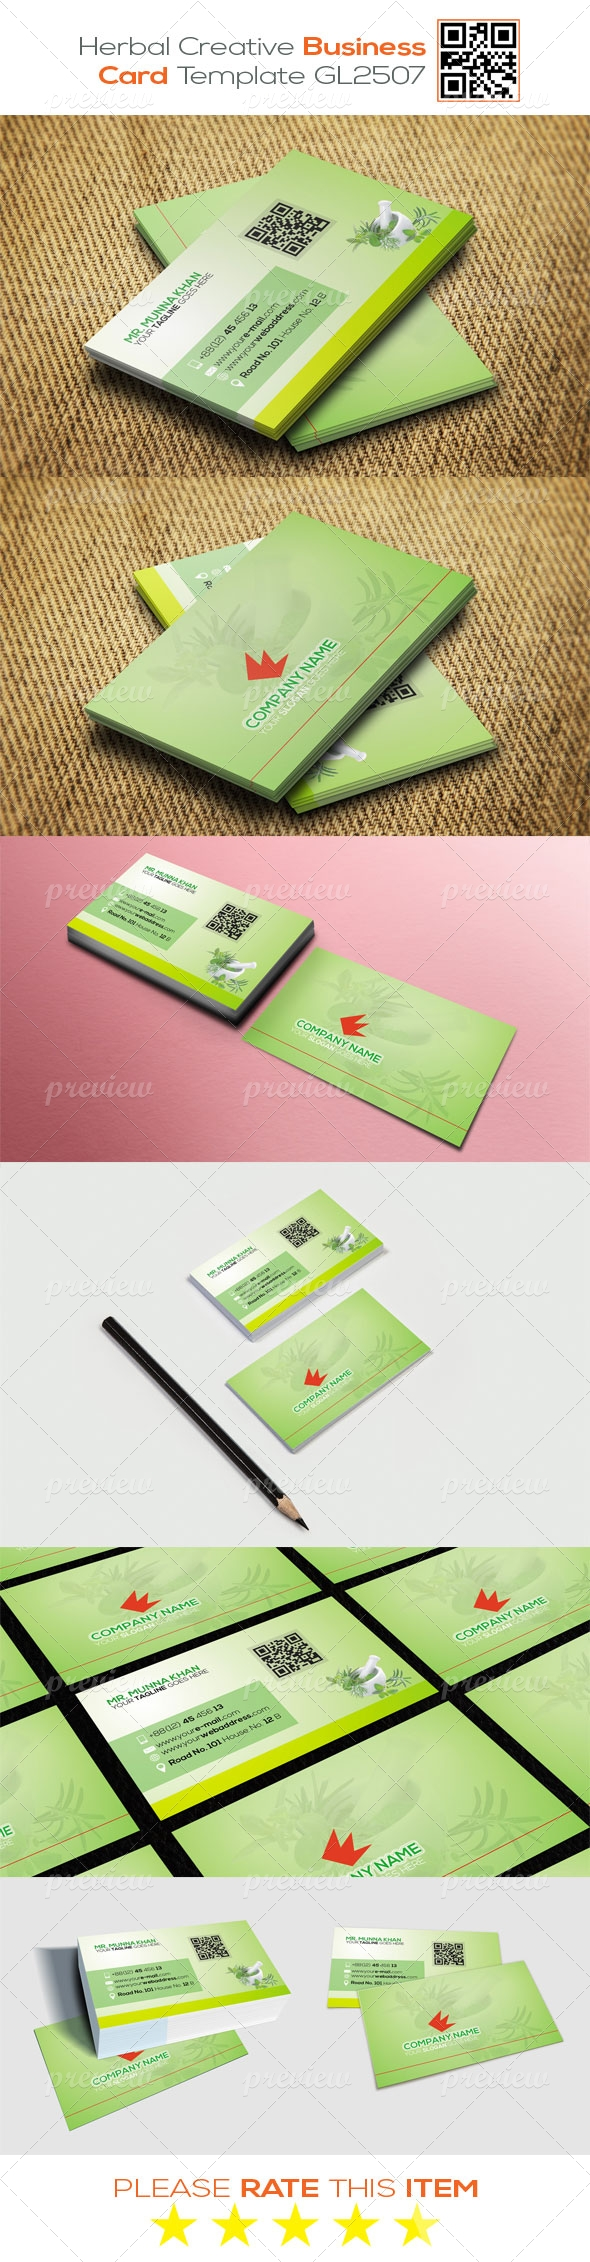 Herbal Creative Business Card Template GL2507